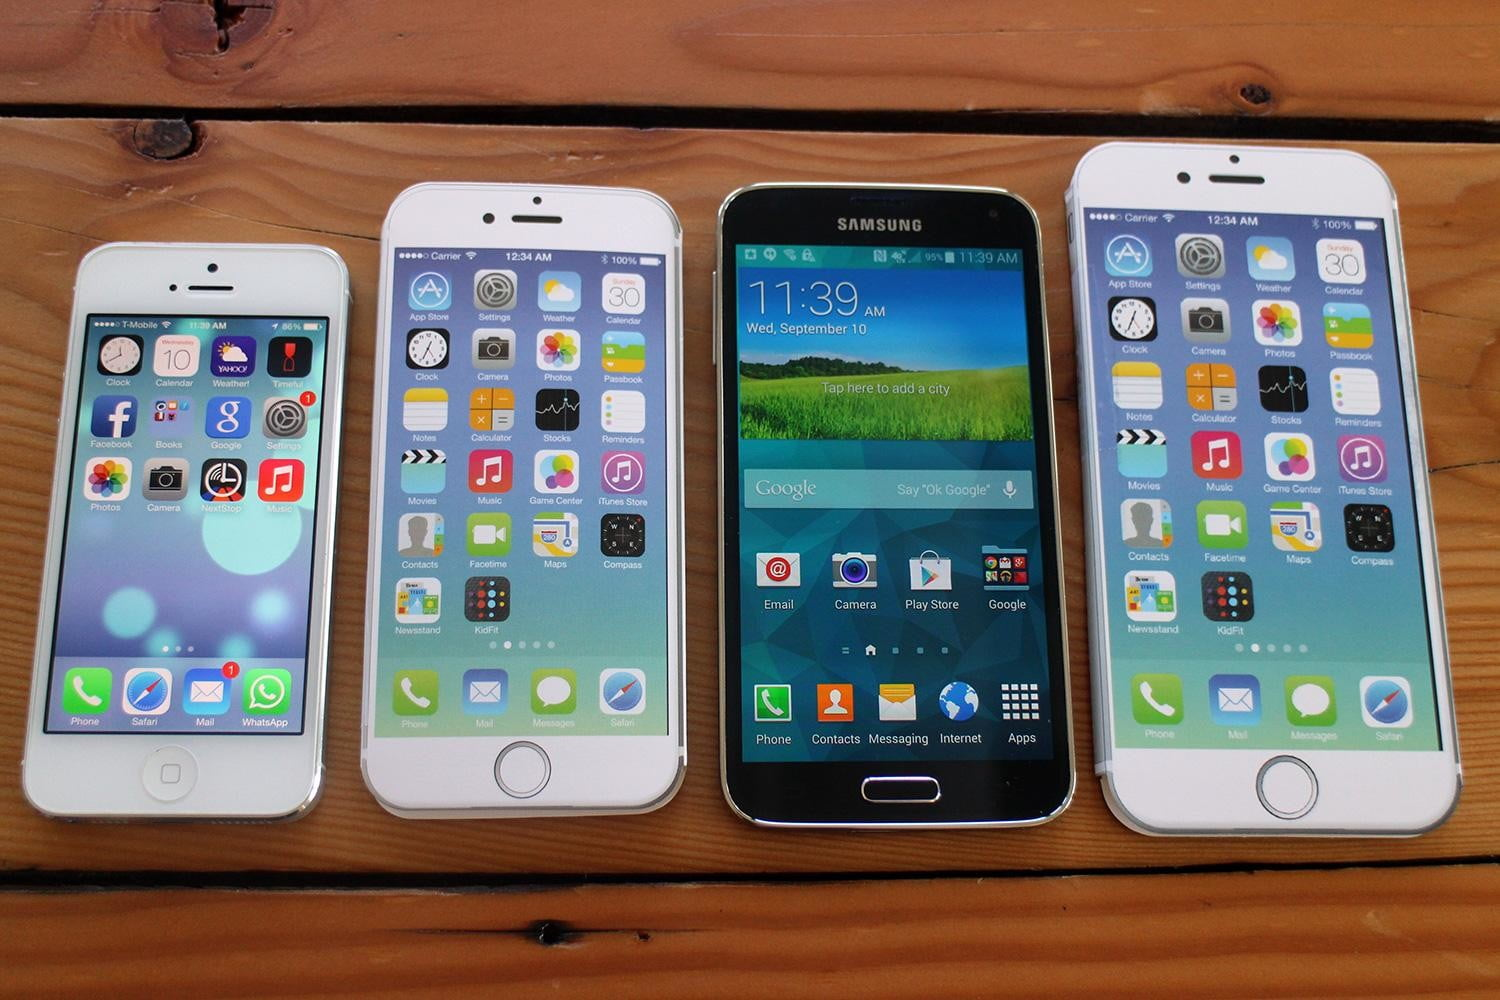 iPhone 5, iPhone 6, Samsung Galaxy S5, and iPhone 6 Plus